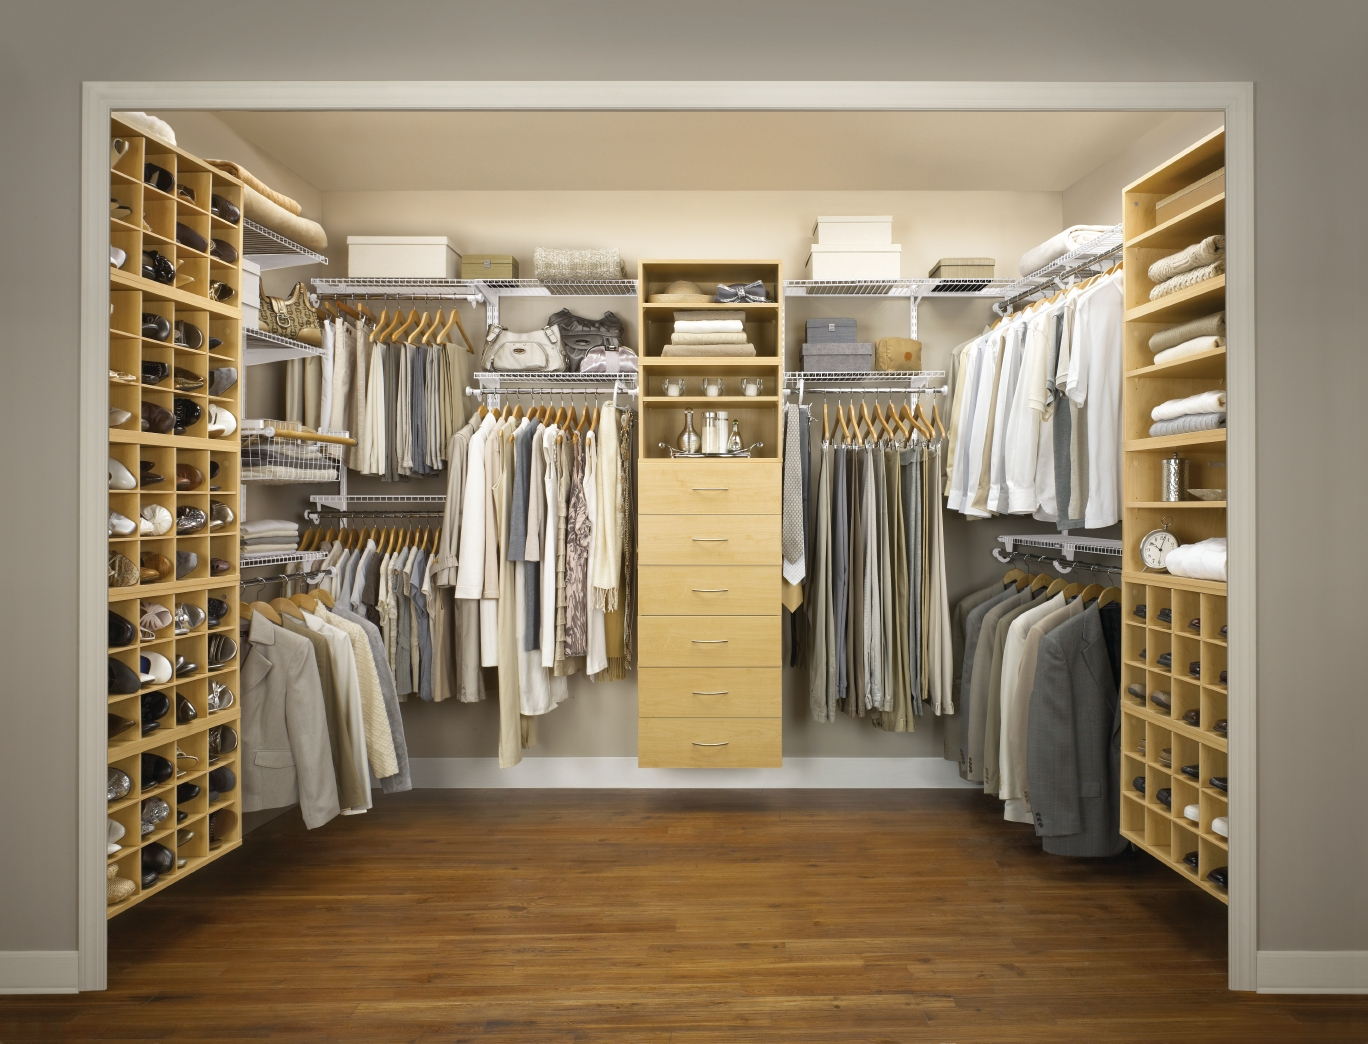 Dresser for closet additional furniture for style homesfeed - Walk in closet designs for a master bedroom ...